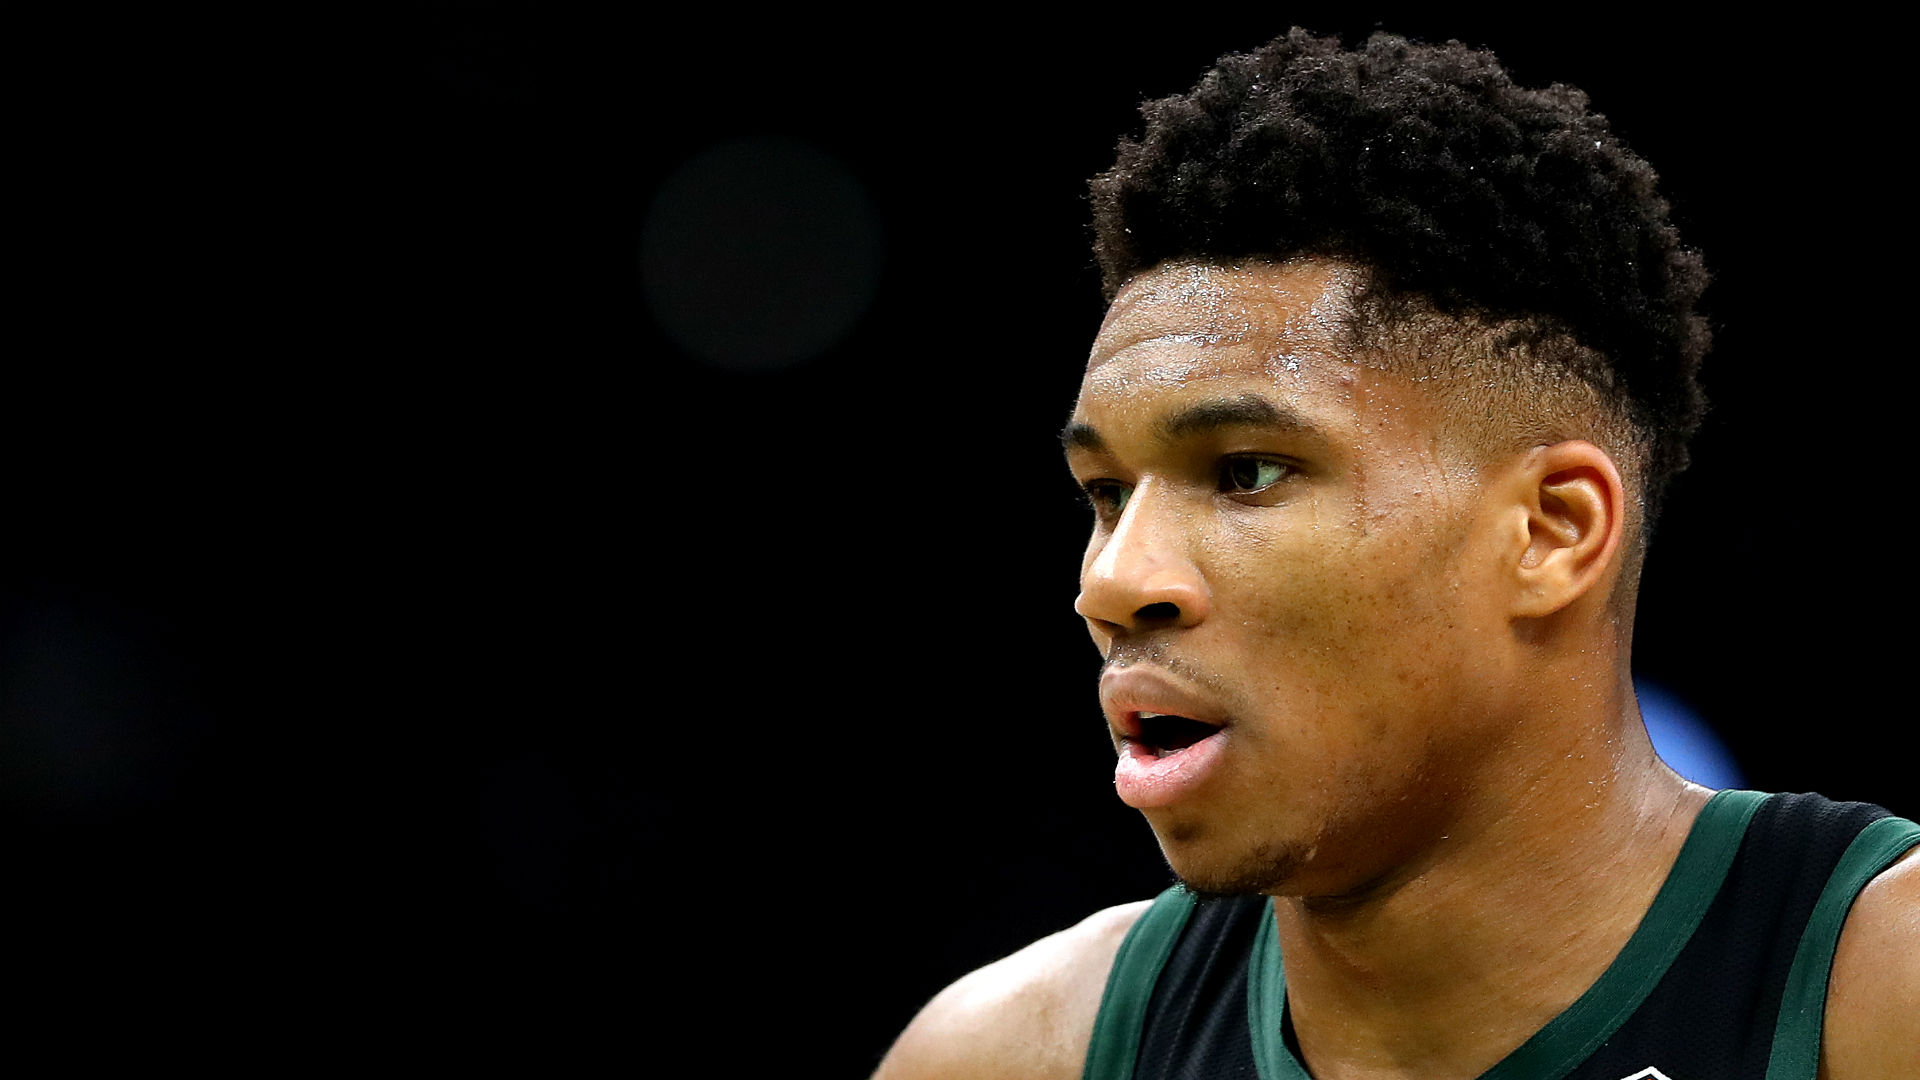 Giannis Antetokounmpo details how he was discovered in new documentary